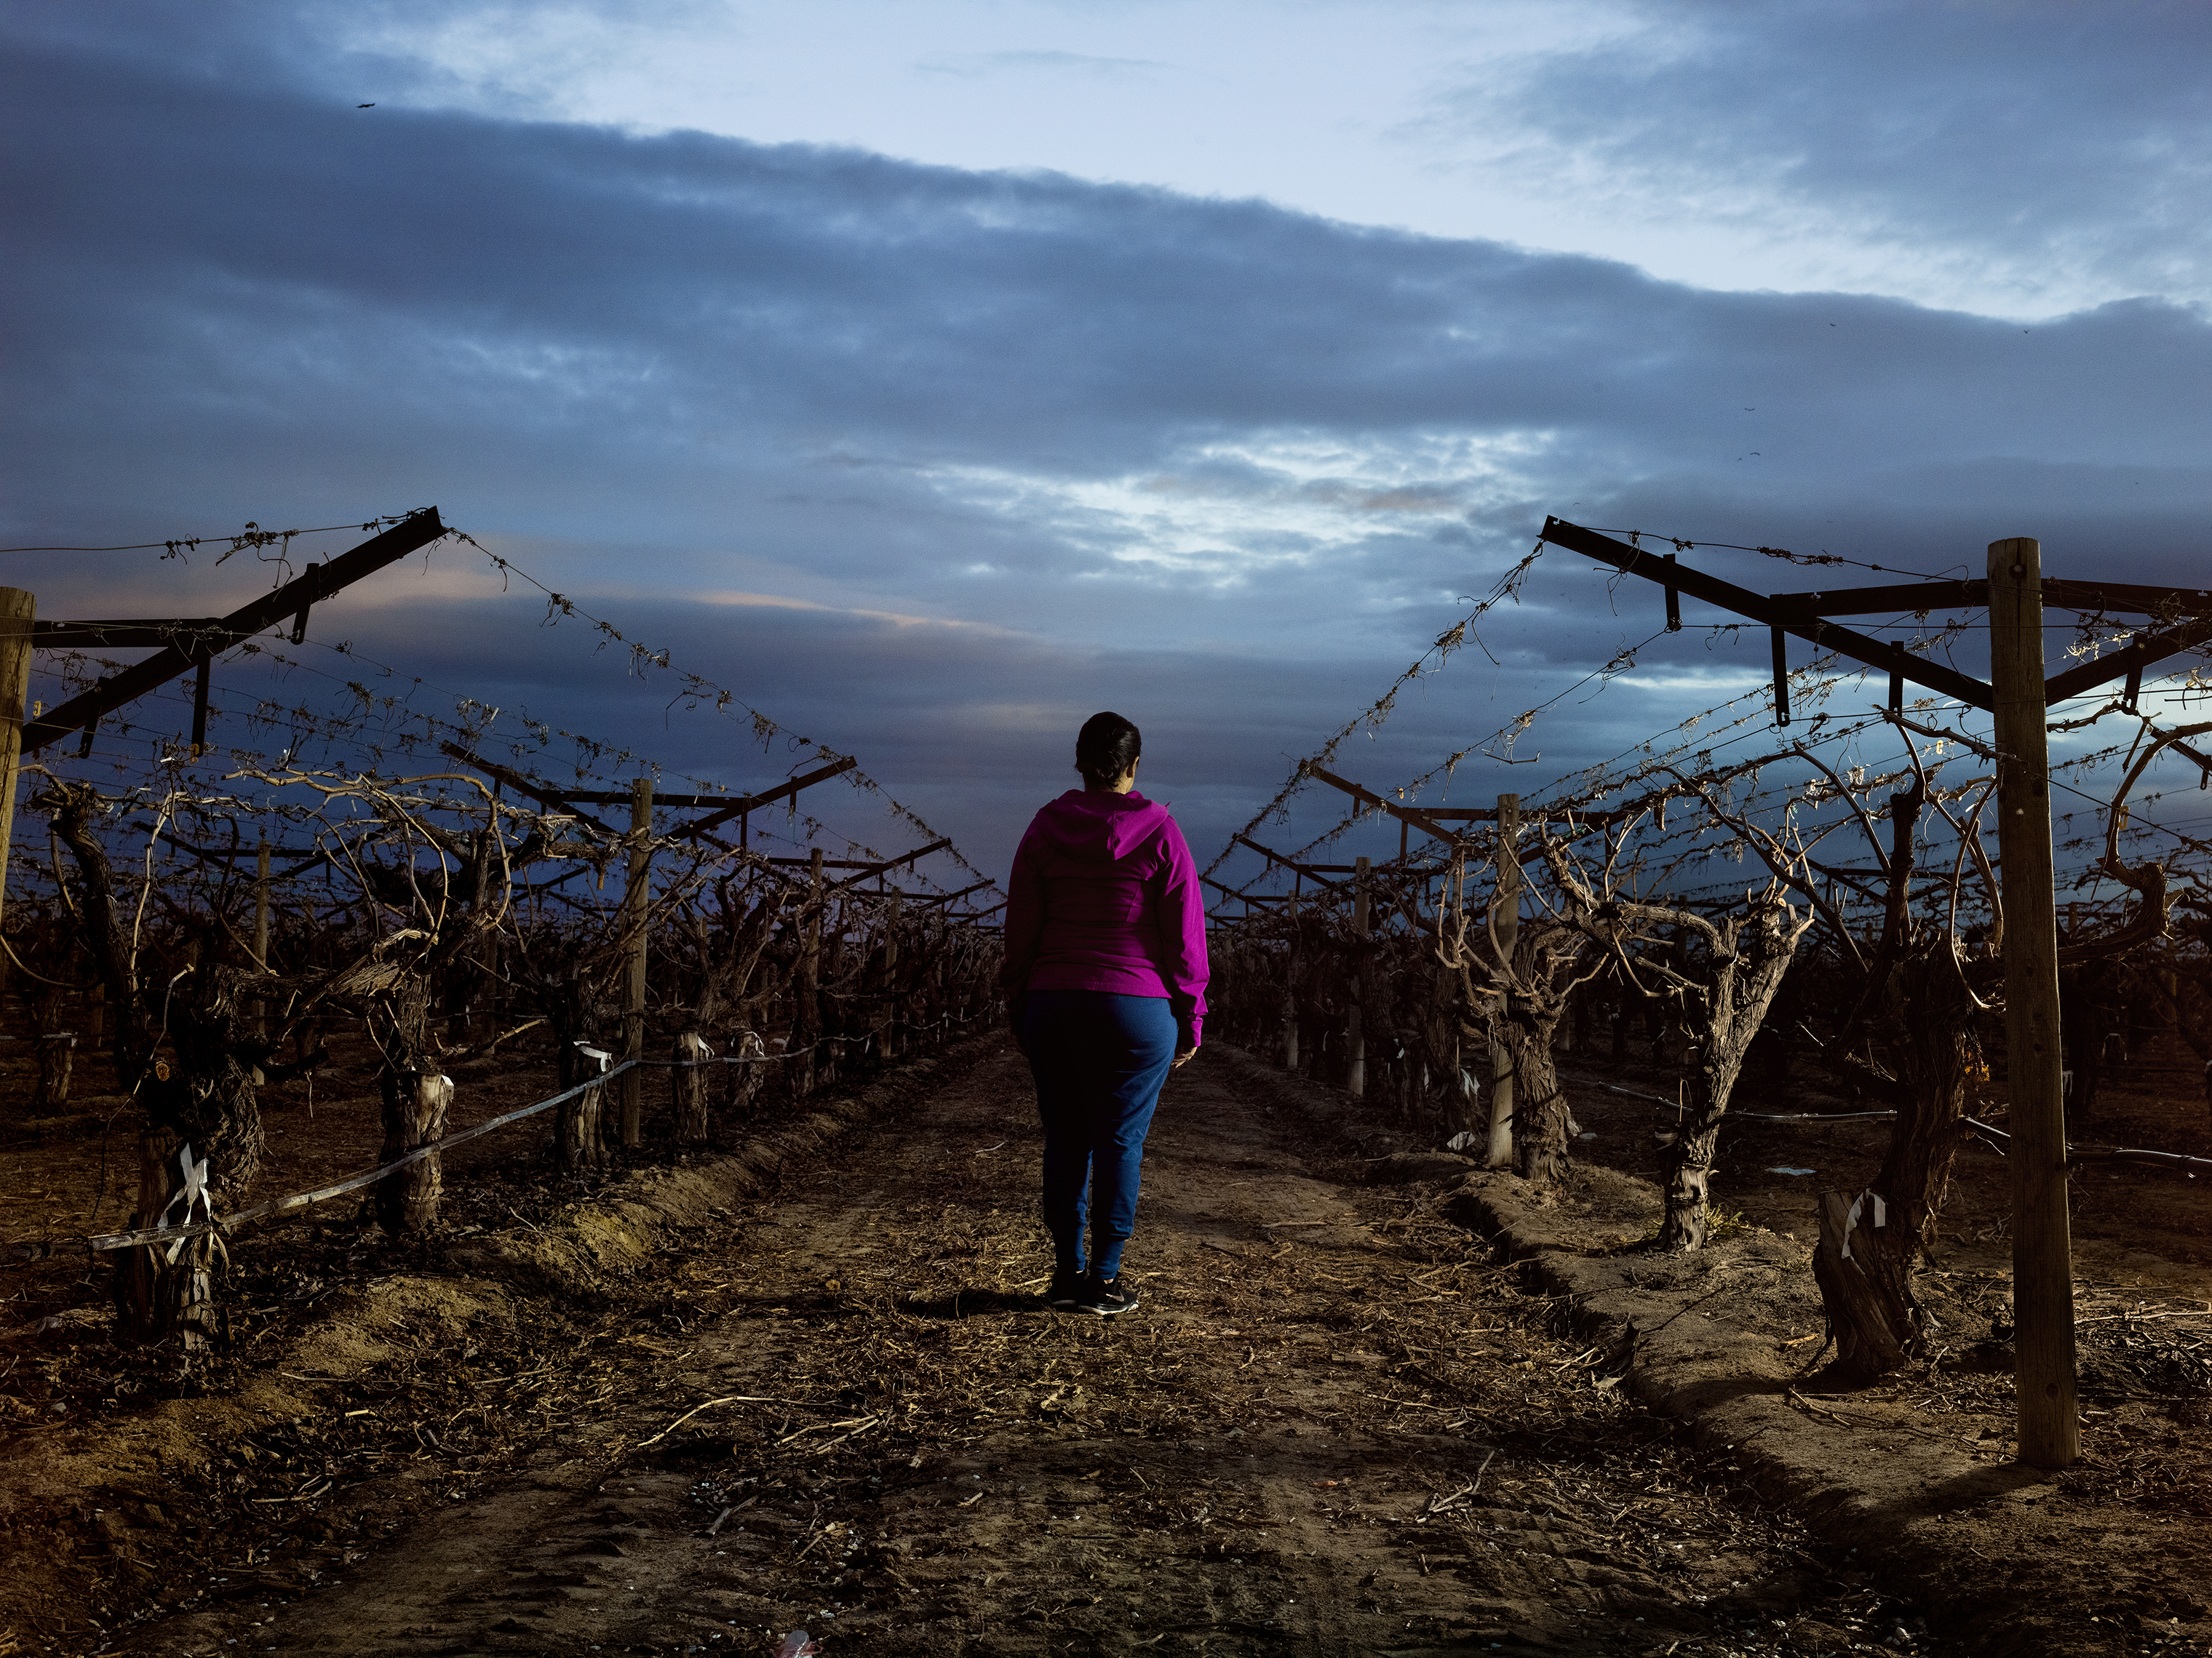 After her husband was deported, Maria, an undocumented farmworker, was left to raise their three daughters on her own.